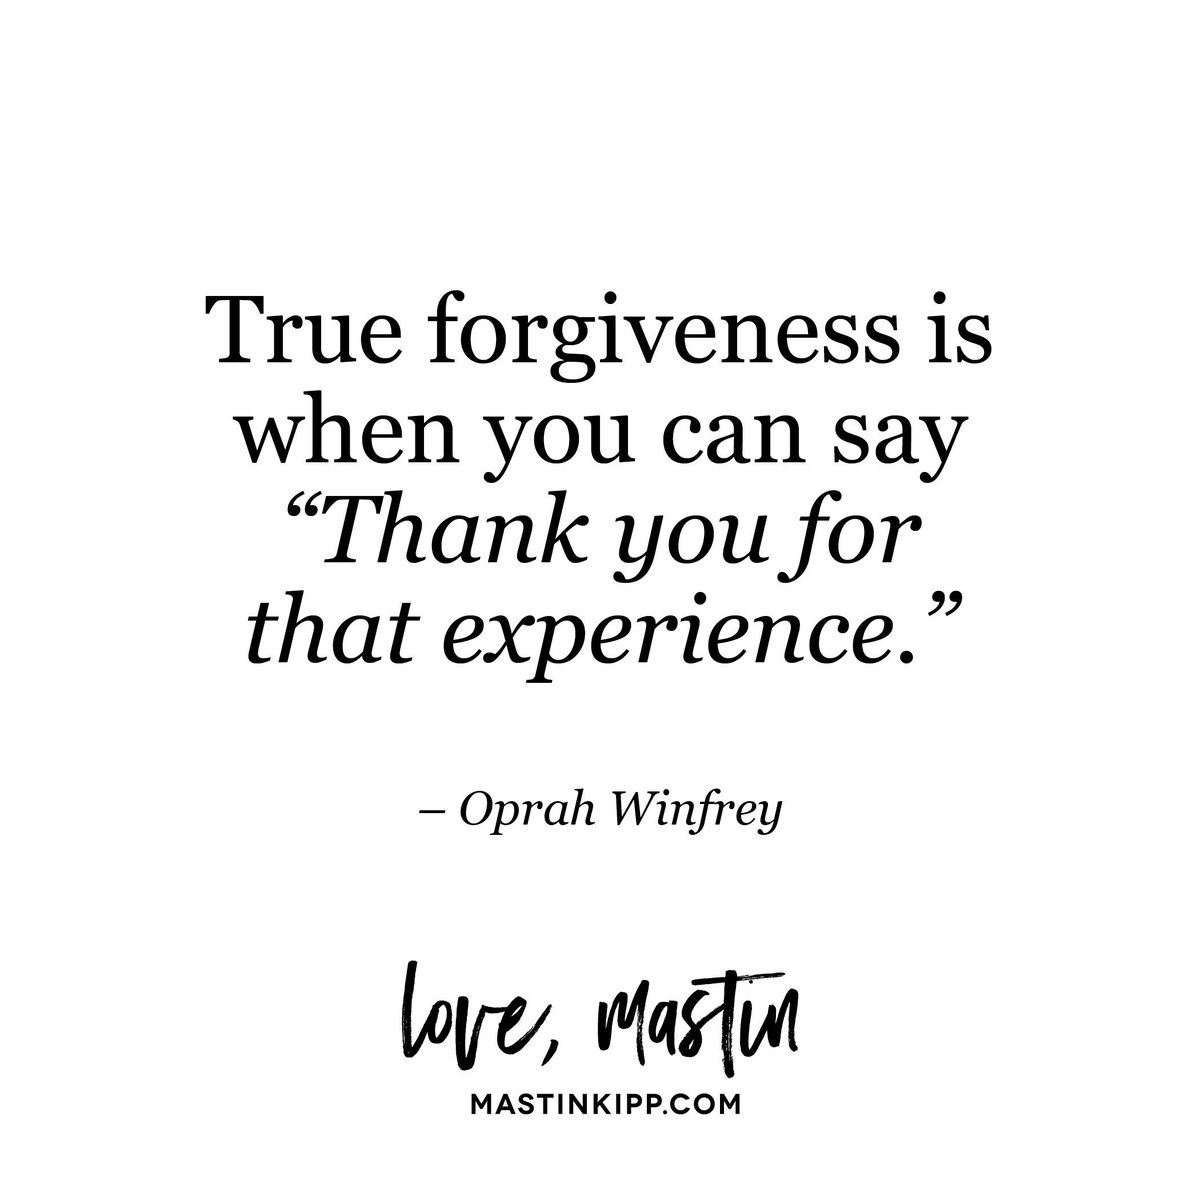 Forgiveness doesn't make right what happened. It sets you free. Who is it time to forgive? https://t.co/YncBtZiQo7